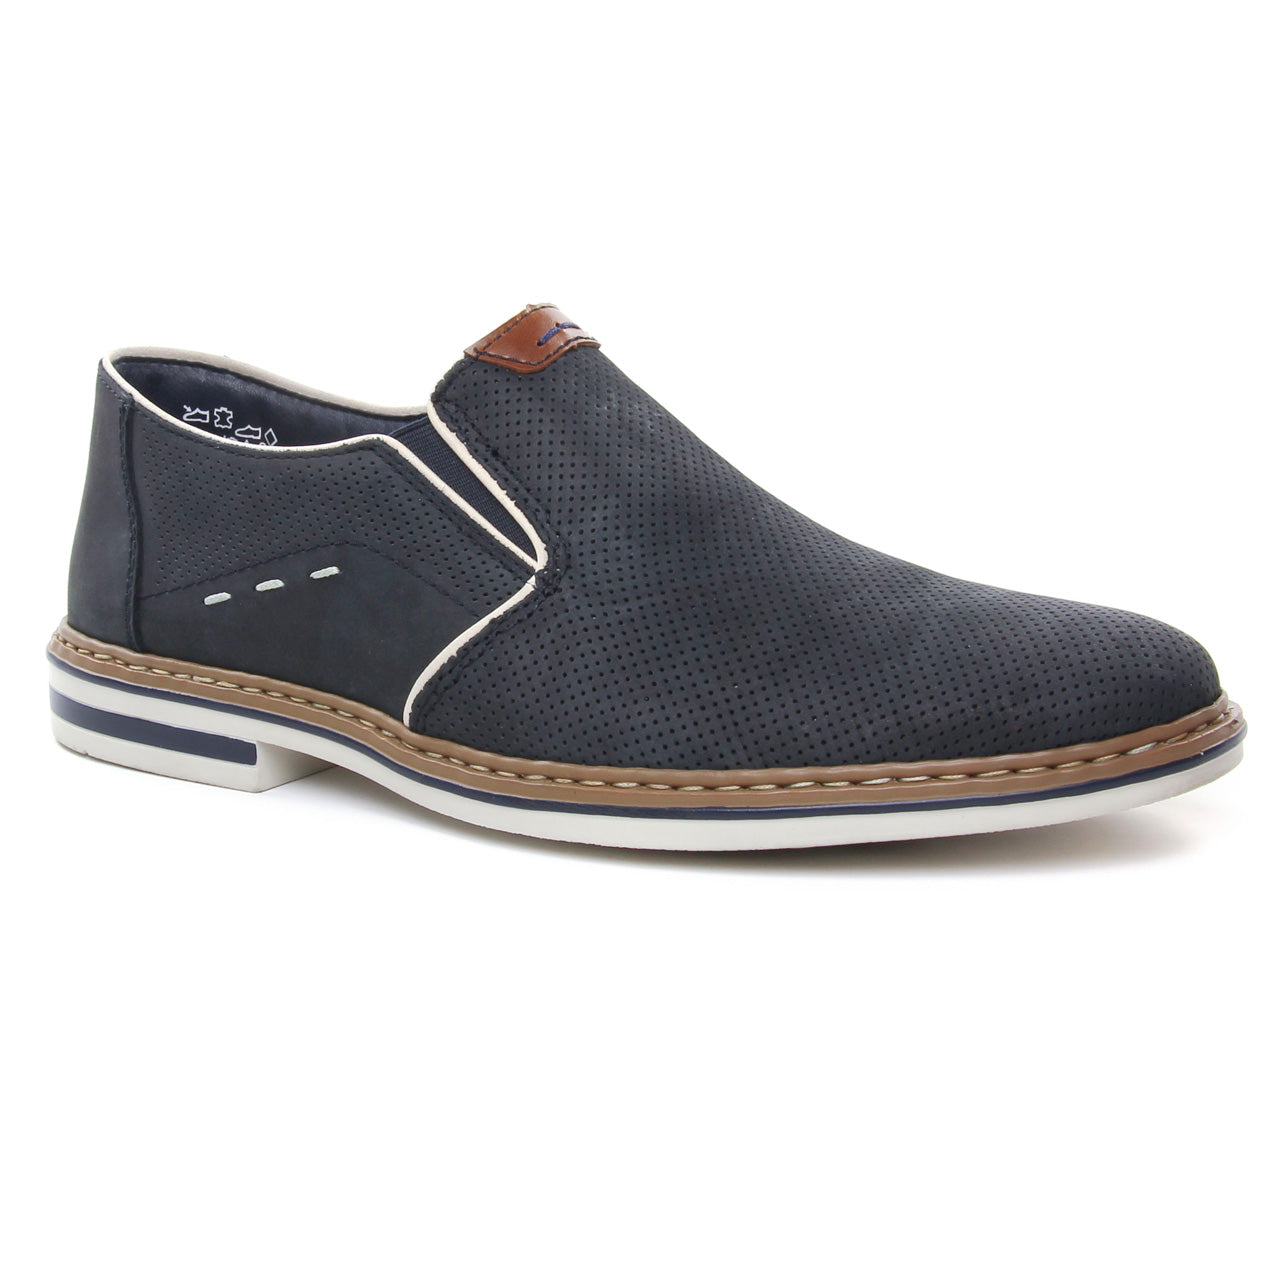 RIEKER MENS B1470-15 NAVY DRESS SHOE